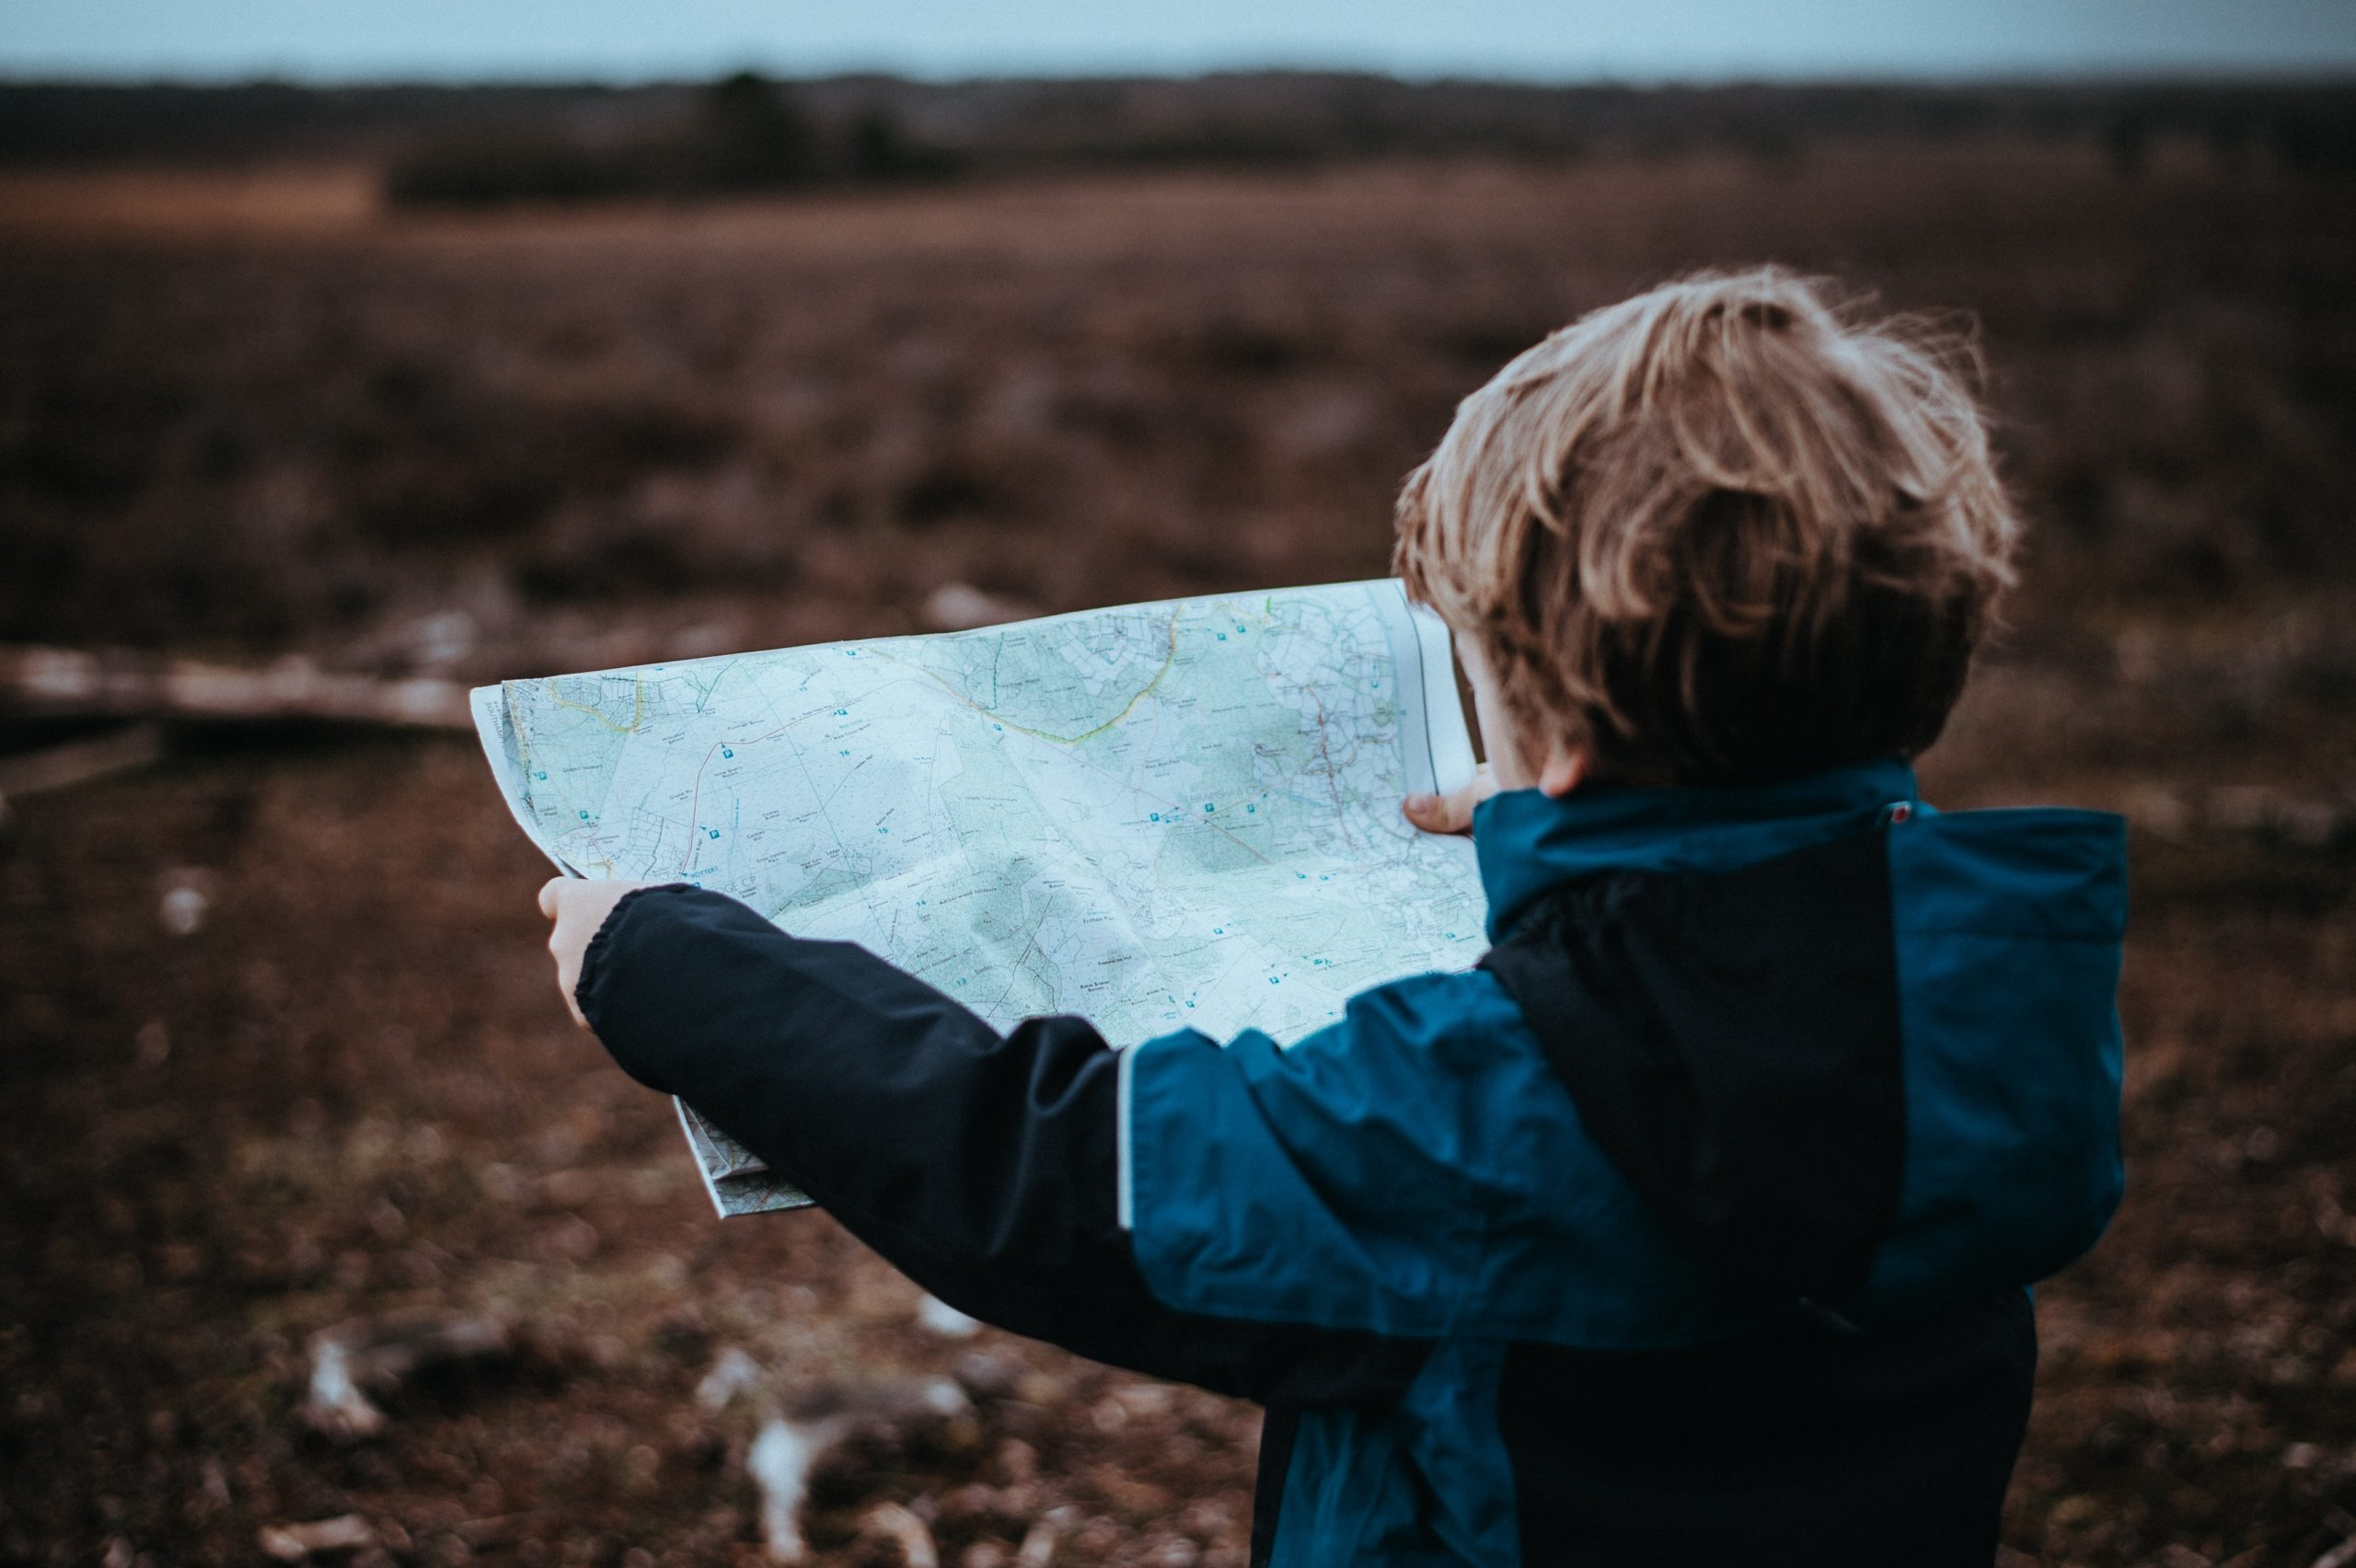 Child looks at map